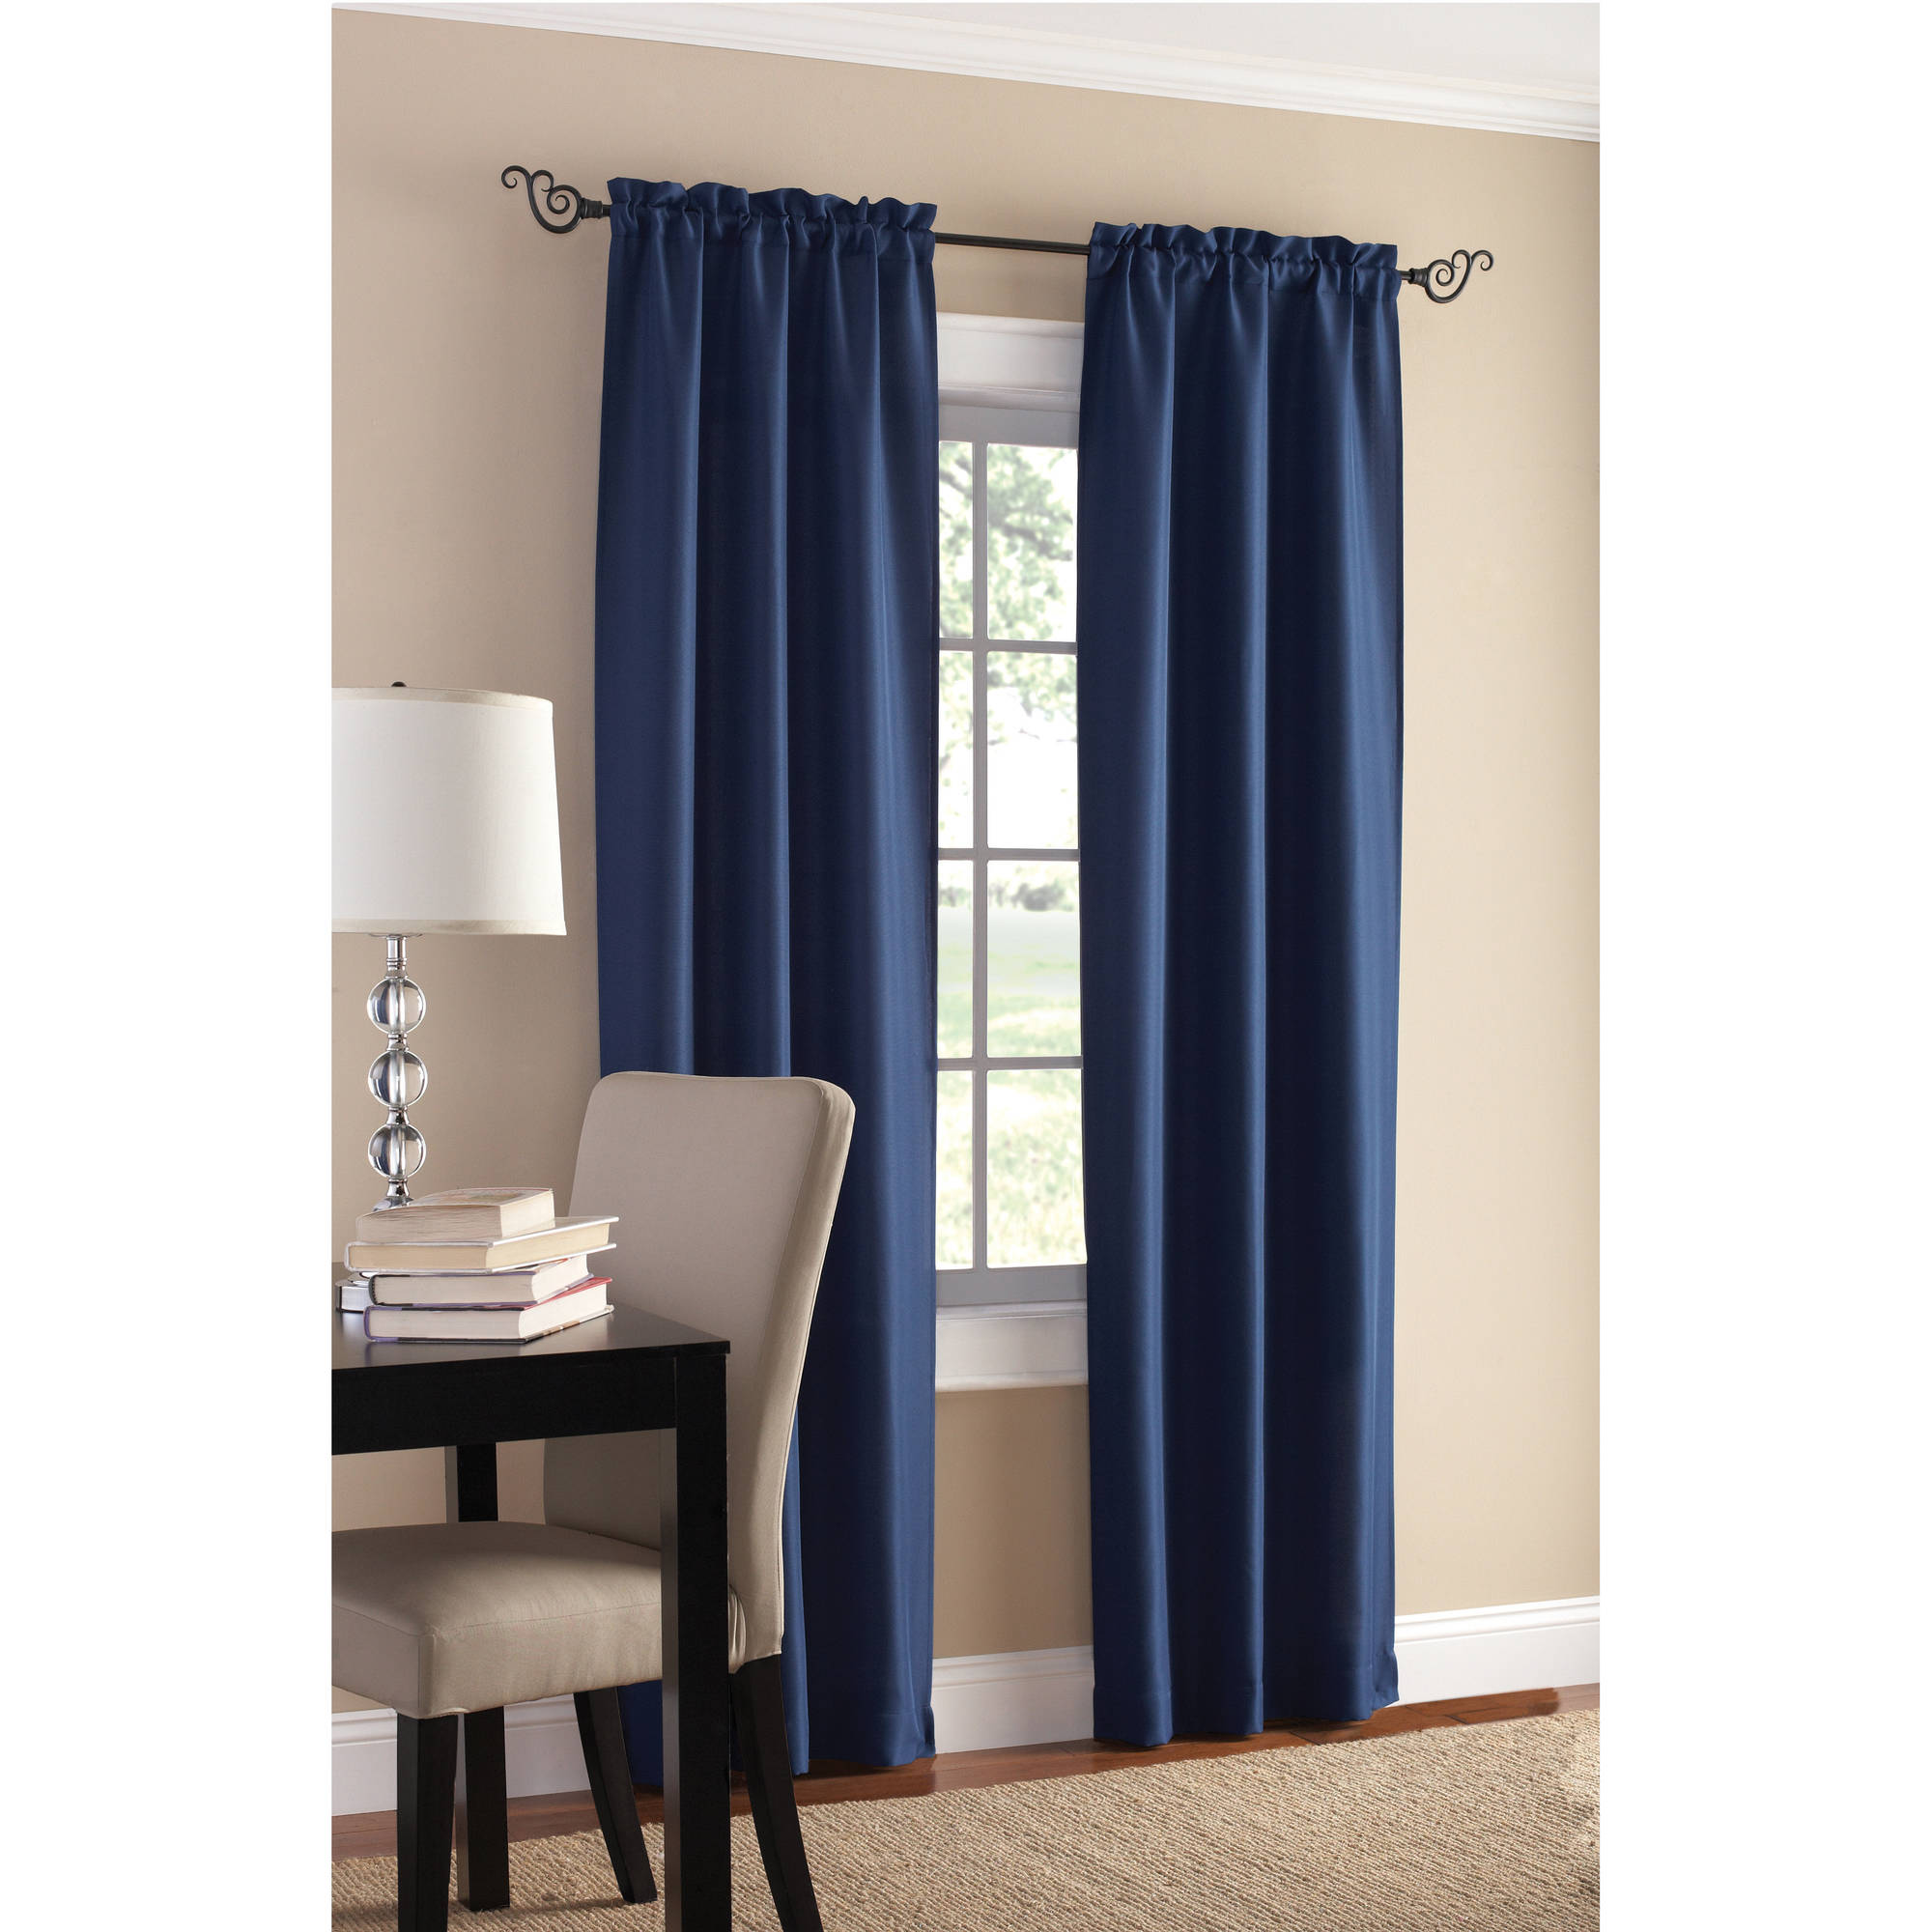 blue curtains of inspirational curtain com navy top dollclique best tab are fresh e ideas